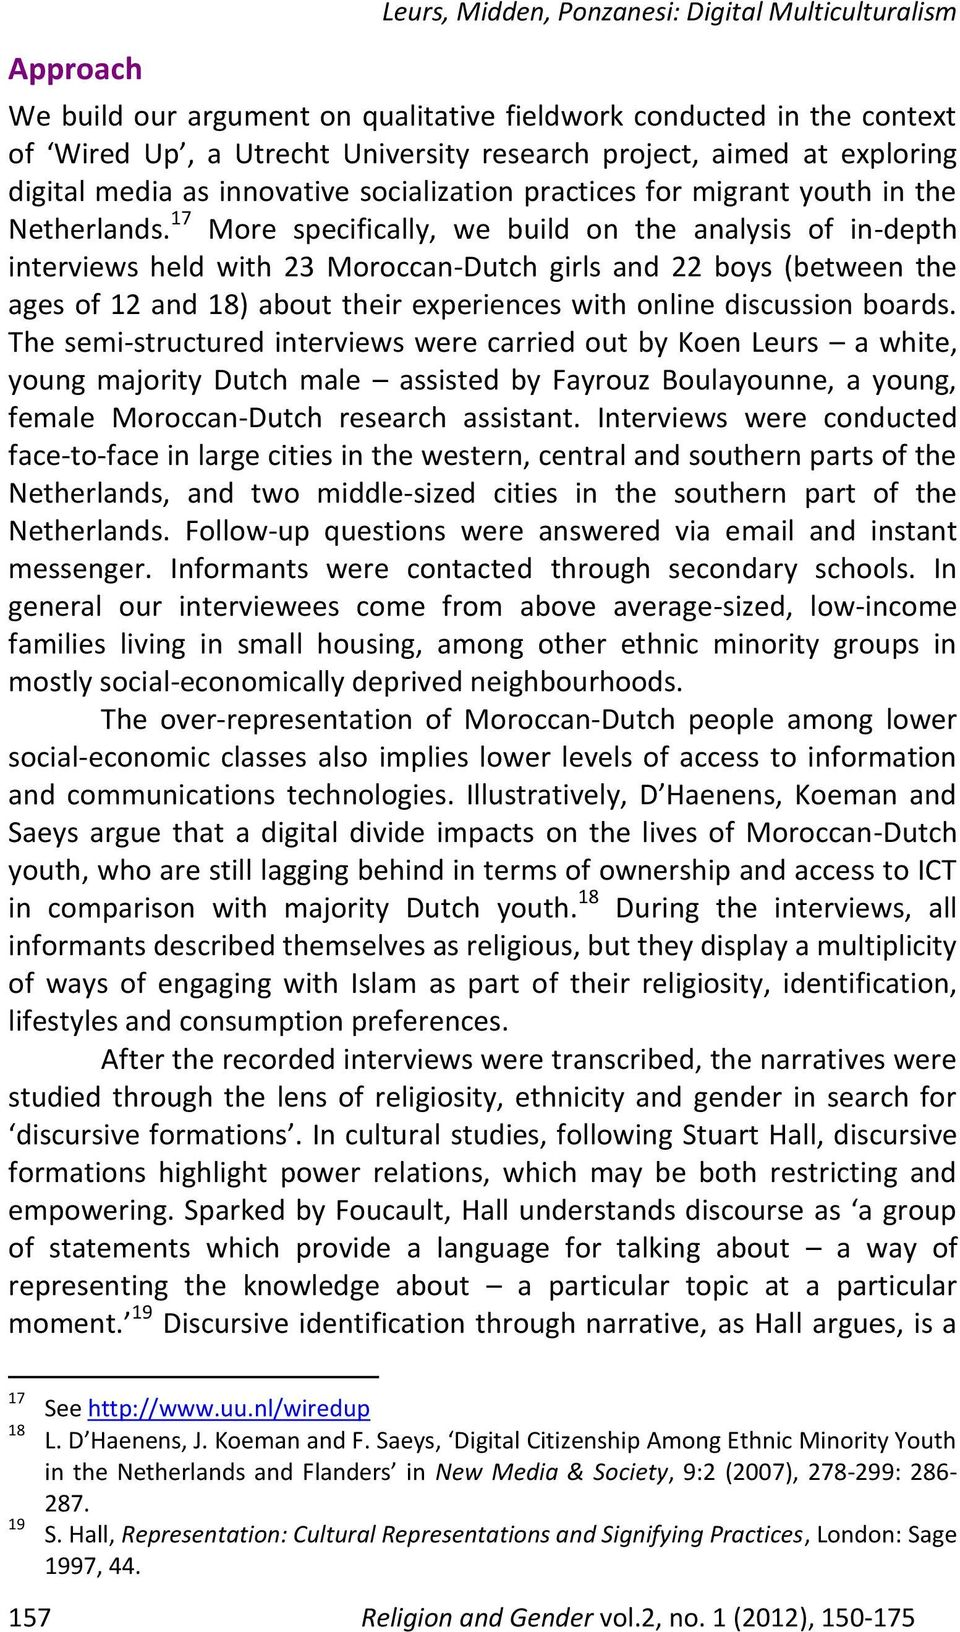 17 More specifically, we build on the analysis of in-depth interviews held with 23 Moroccan-Dutch girls and 22 boys (between the ages of 12 and 18) about their experiences with online discussion